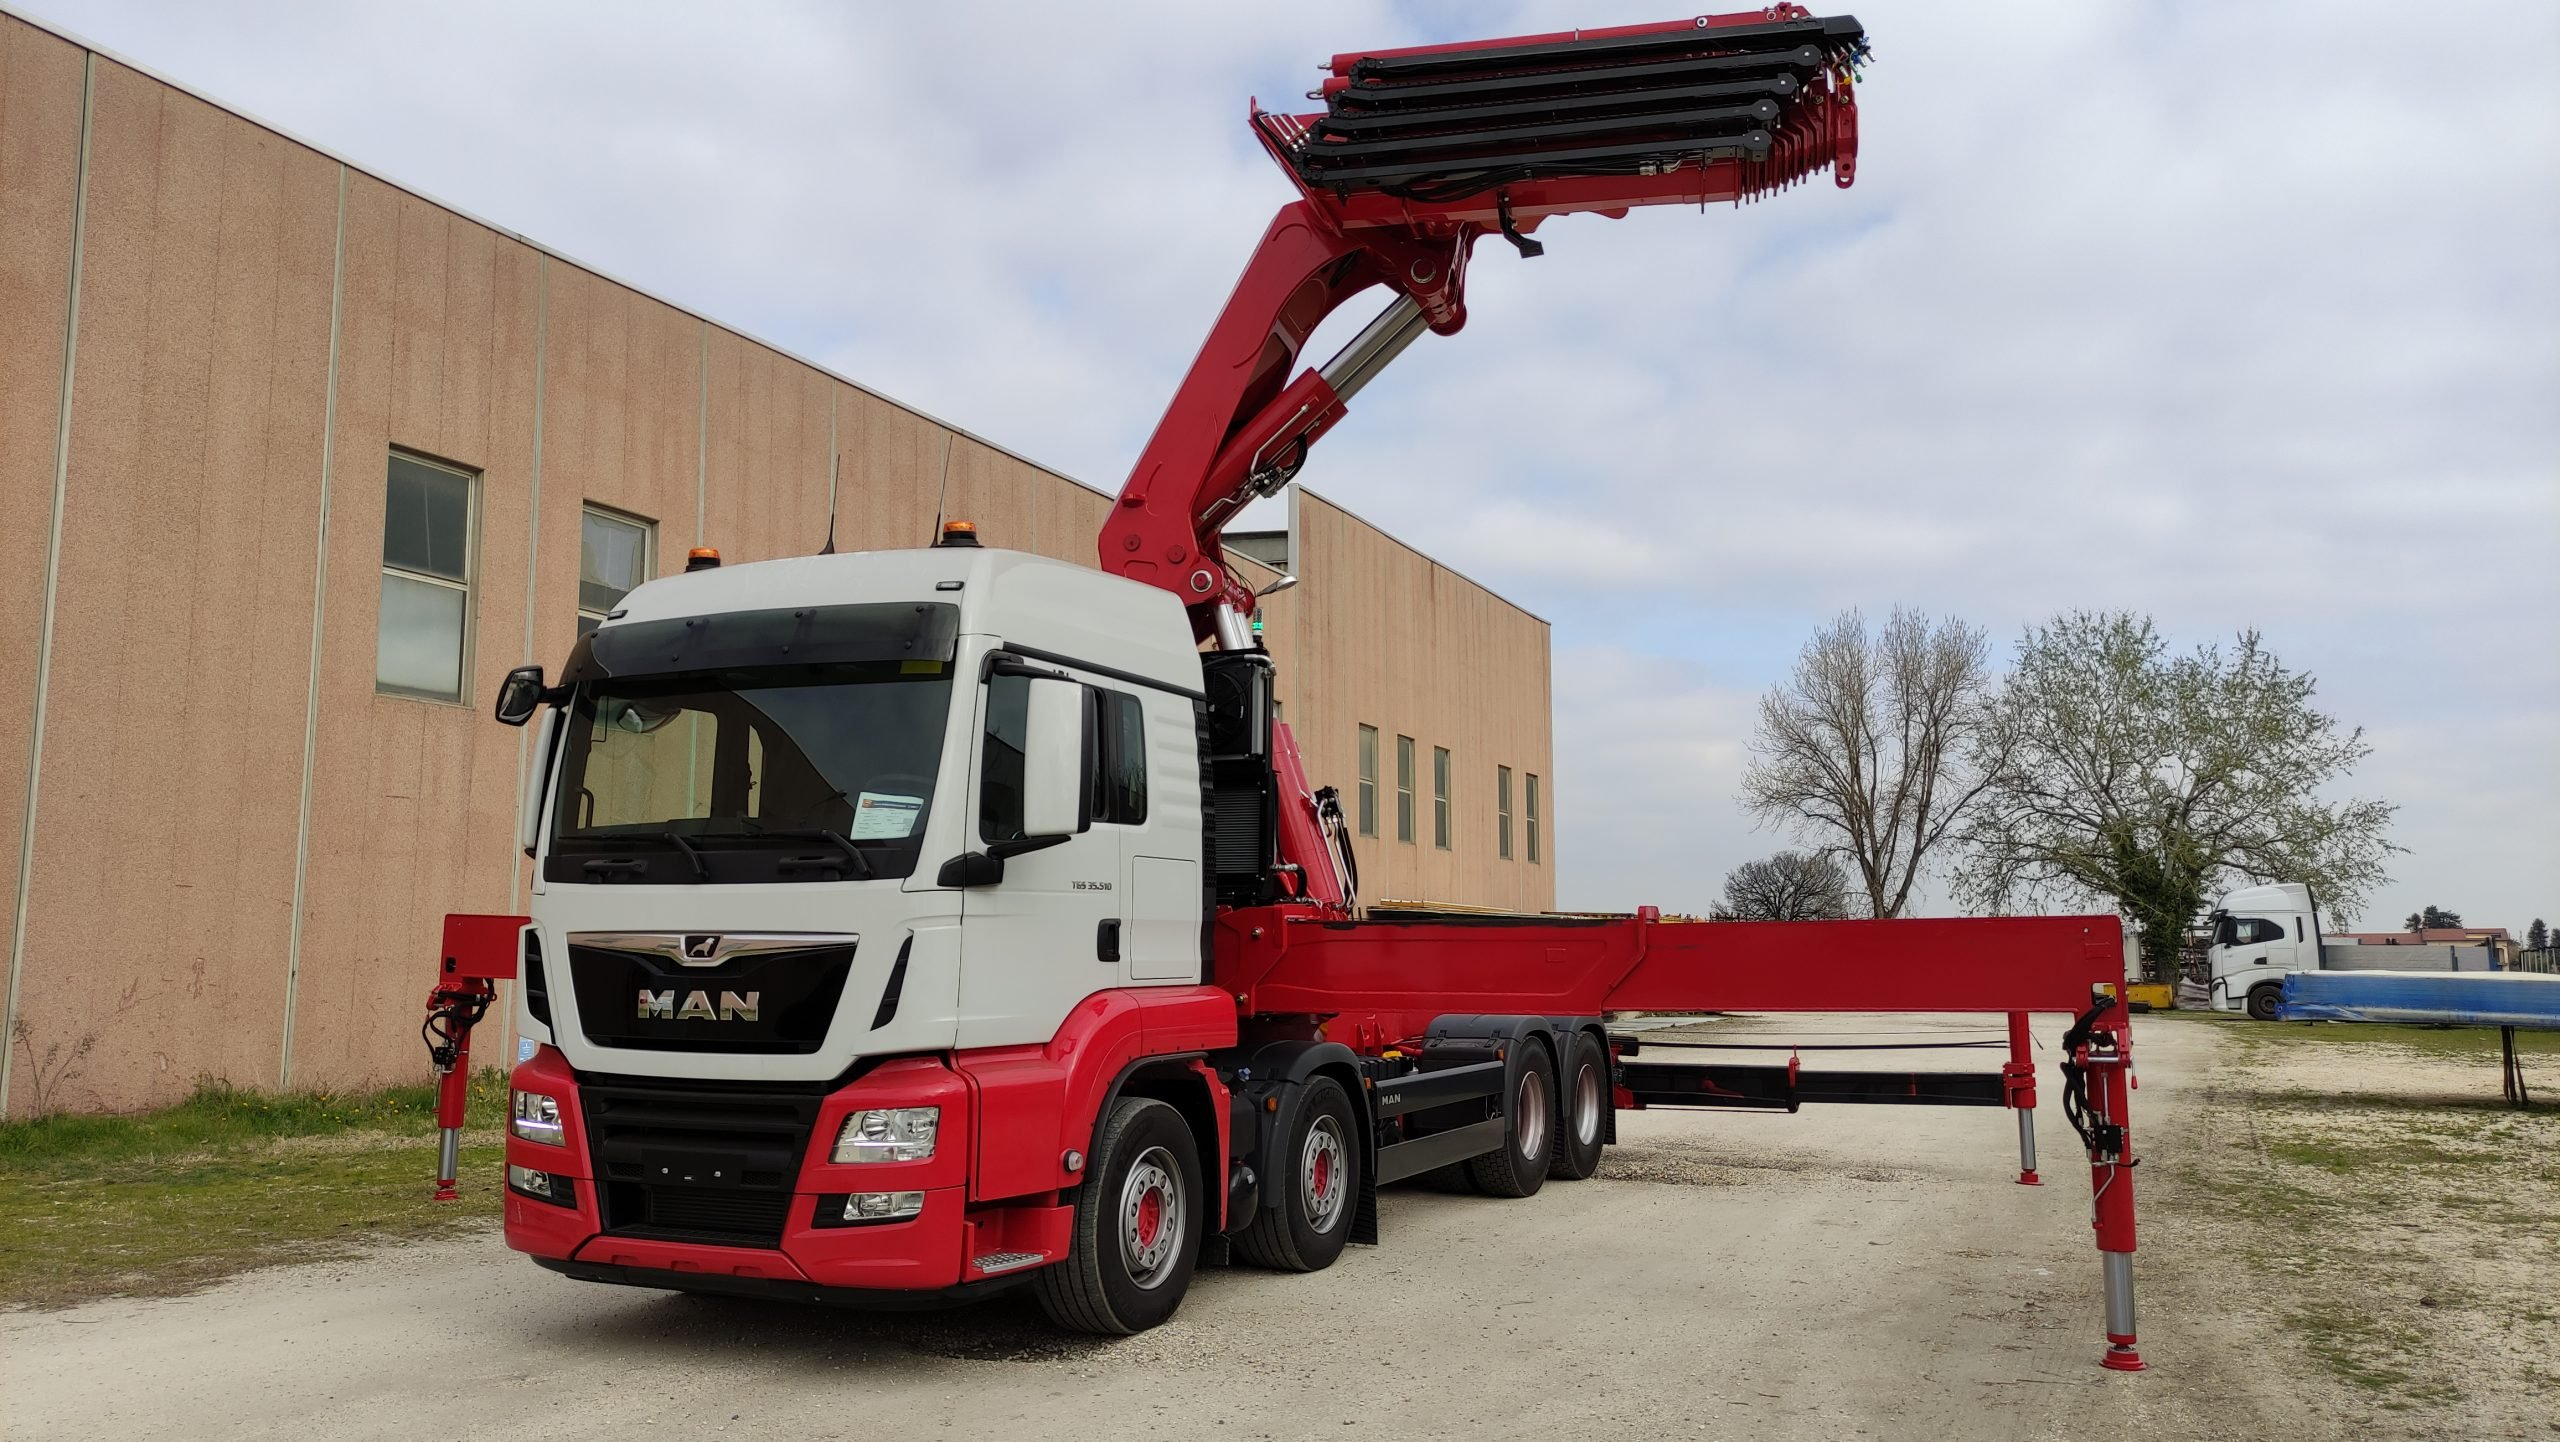 COPMA 1400 TOP RANGE LOADER CRANE